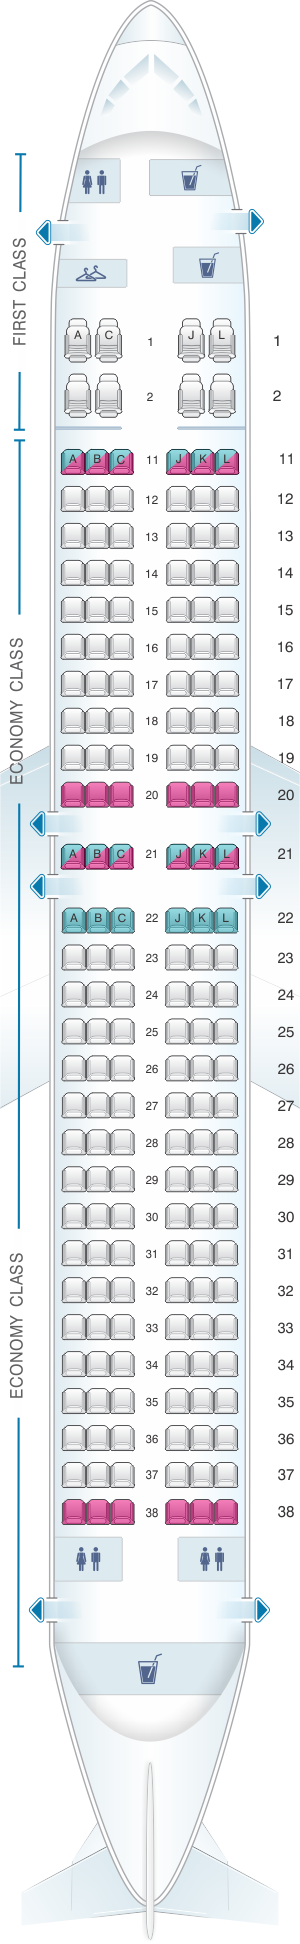 Seat map for Air China Boeing B737 MAX 8